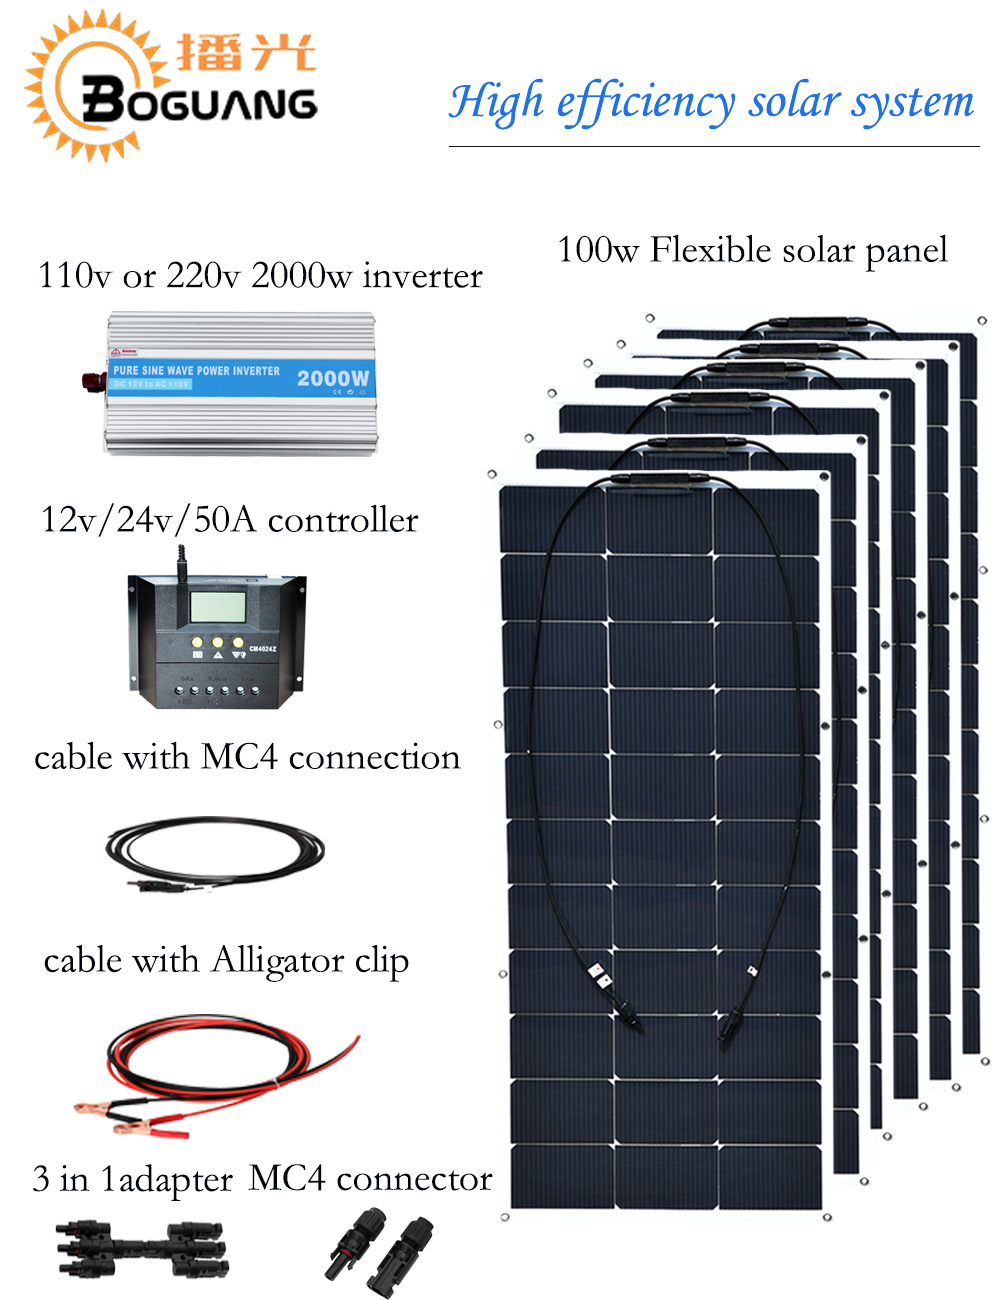 Boguang 600w solar system 100w semi flexible solar panel 110v 220v 1000w inverter 50A controller MC4 connector cable DIY kit solarparts off grid solar system kits 800w flexible solar panel 1pcs 60a controller 2kw inverter 2 sets 4 in1 mc4 adaptor cable